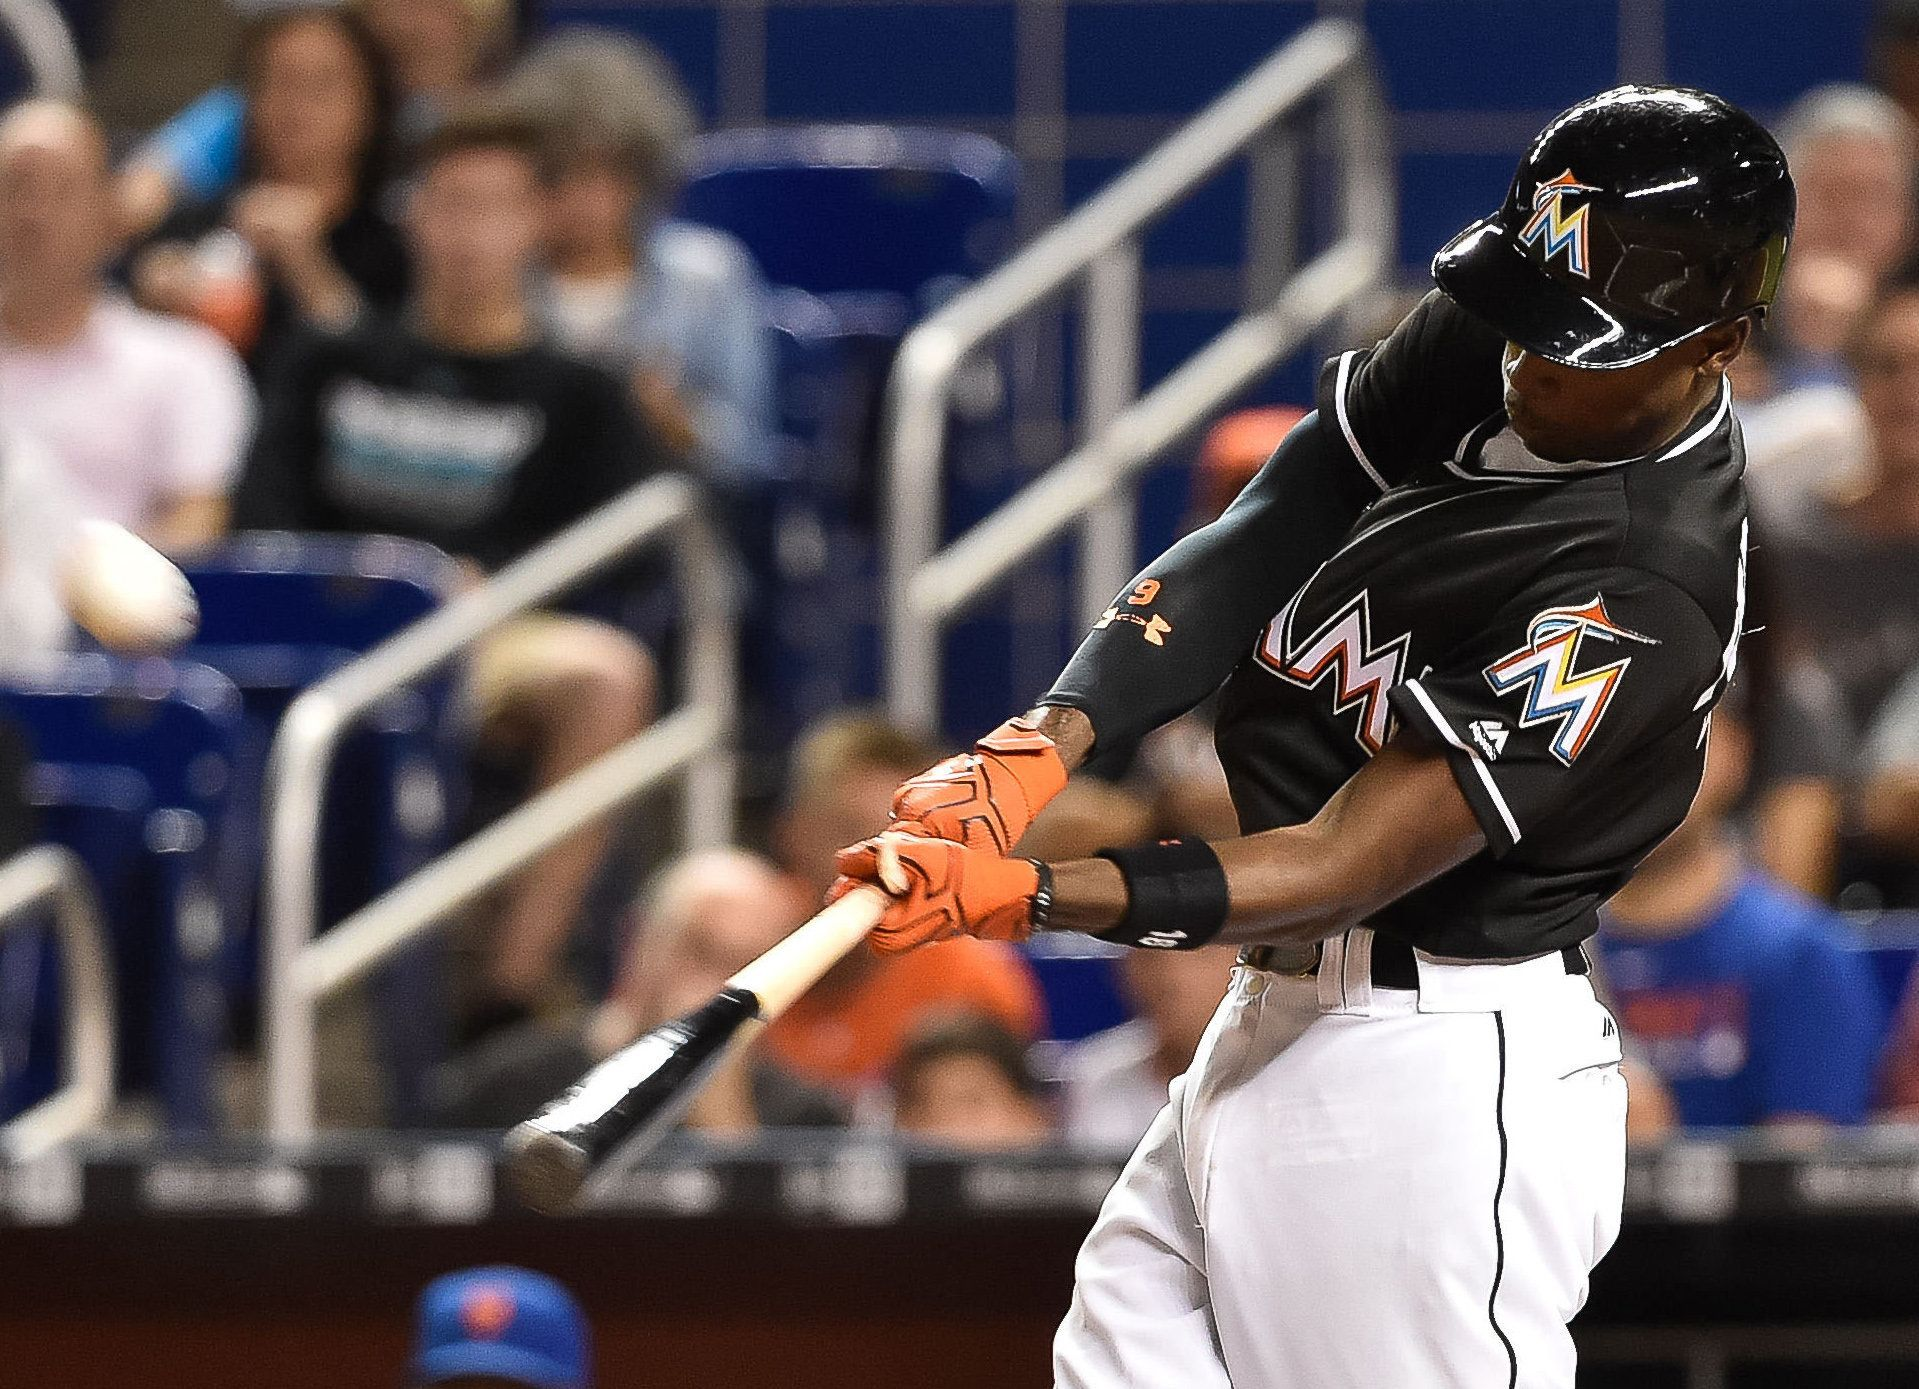 Miami Marlins second baseman Dee Gordon connects for a solo home run during the first inning against the New York Mets at Mar